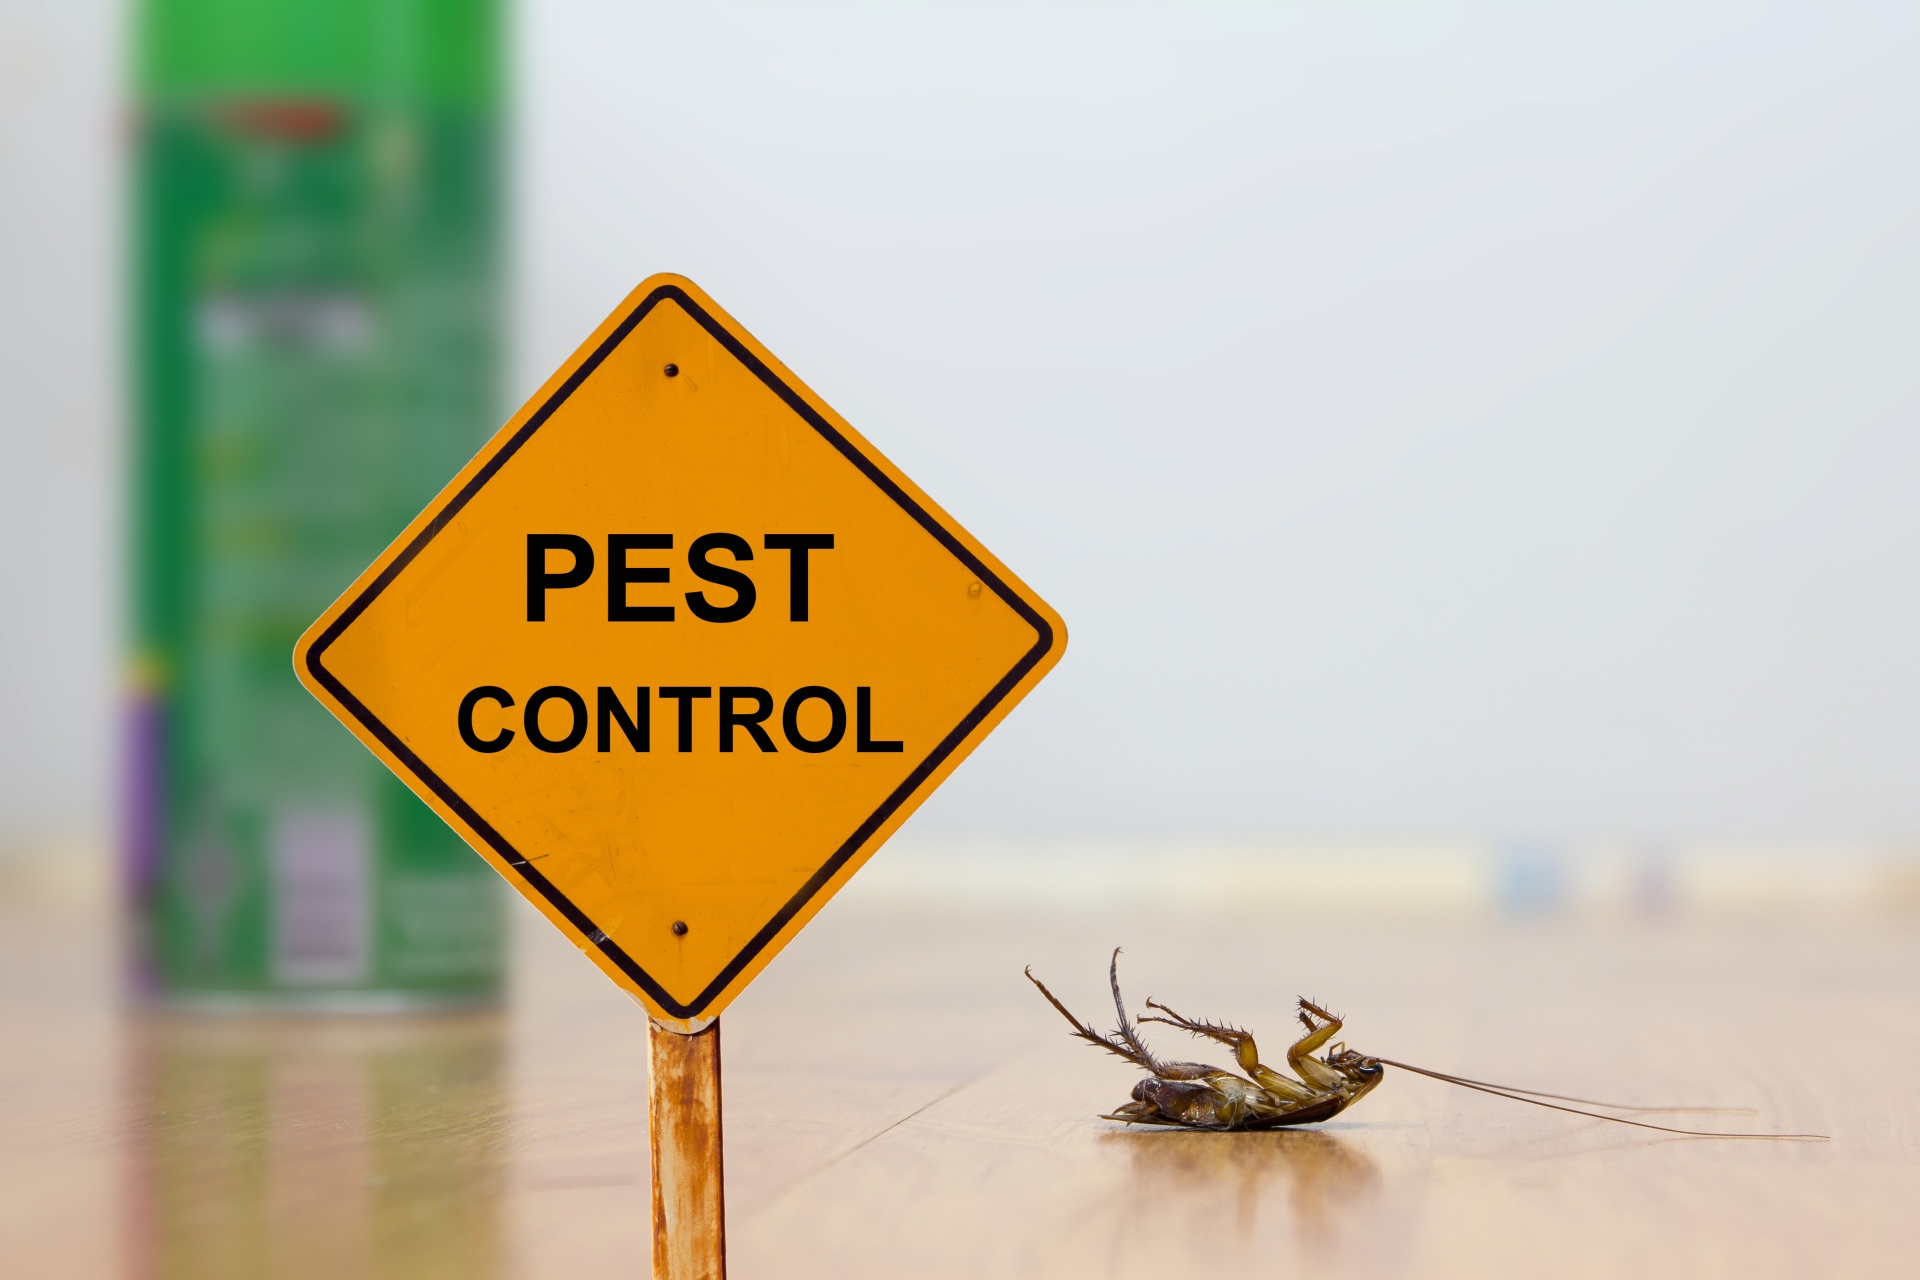 24 Hour Pest Control, Pest Control in Chigwell Row, Chigwell, IG7. Call Now 020 8166 9746